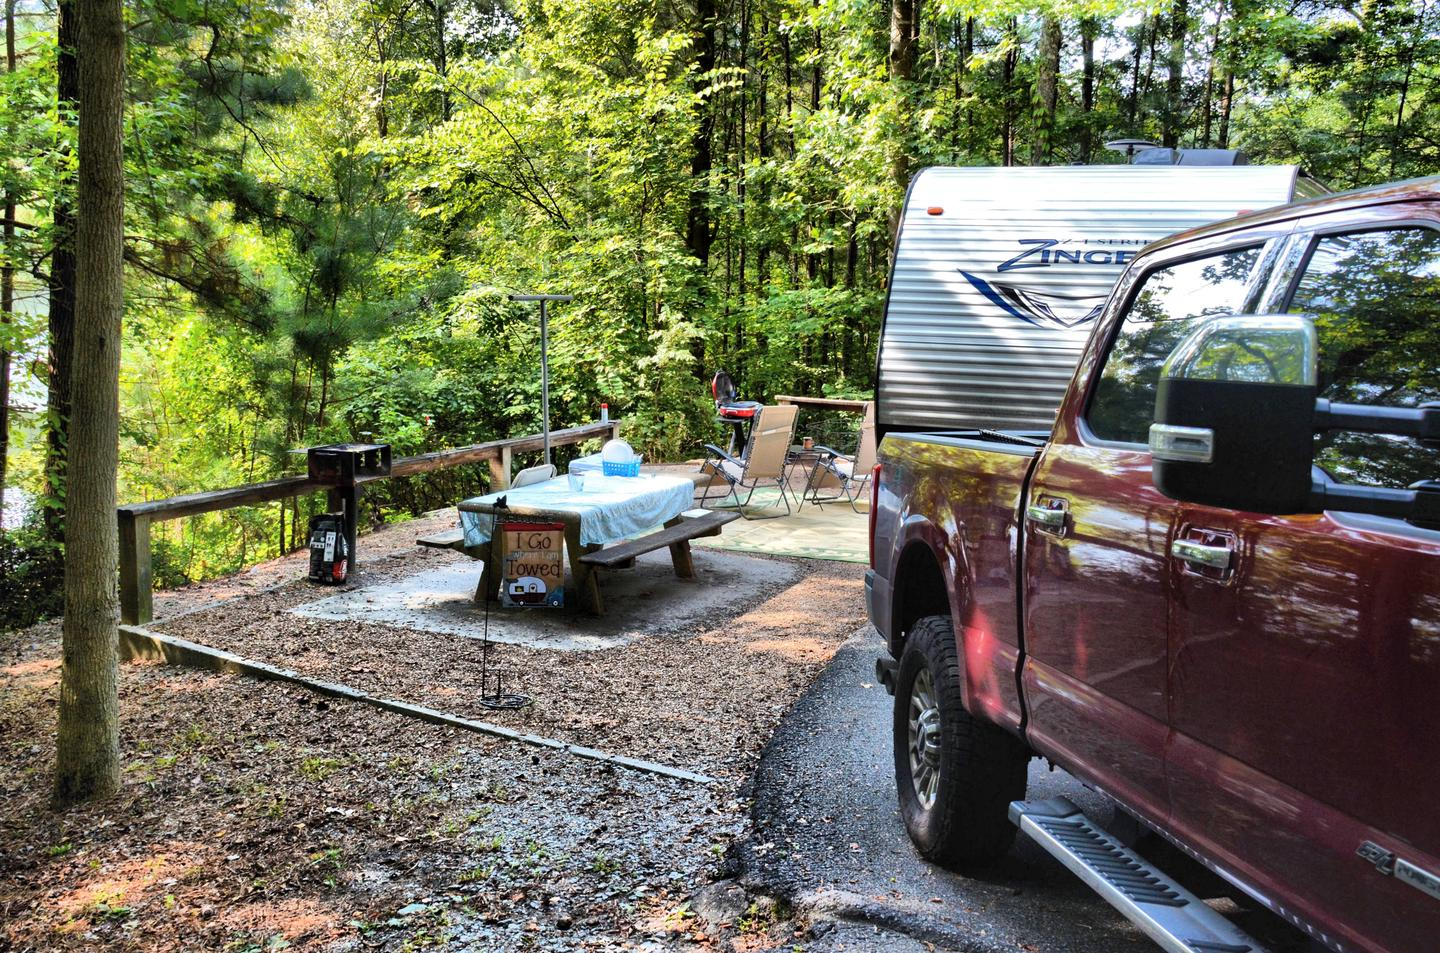 Awning-side clearance, campsite view.Payne Campground, campsite 42.